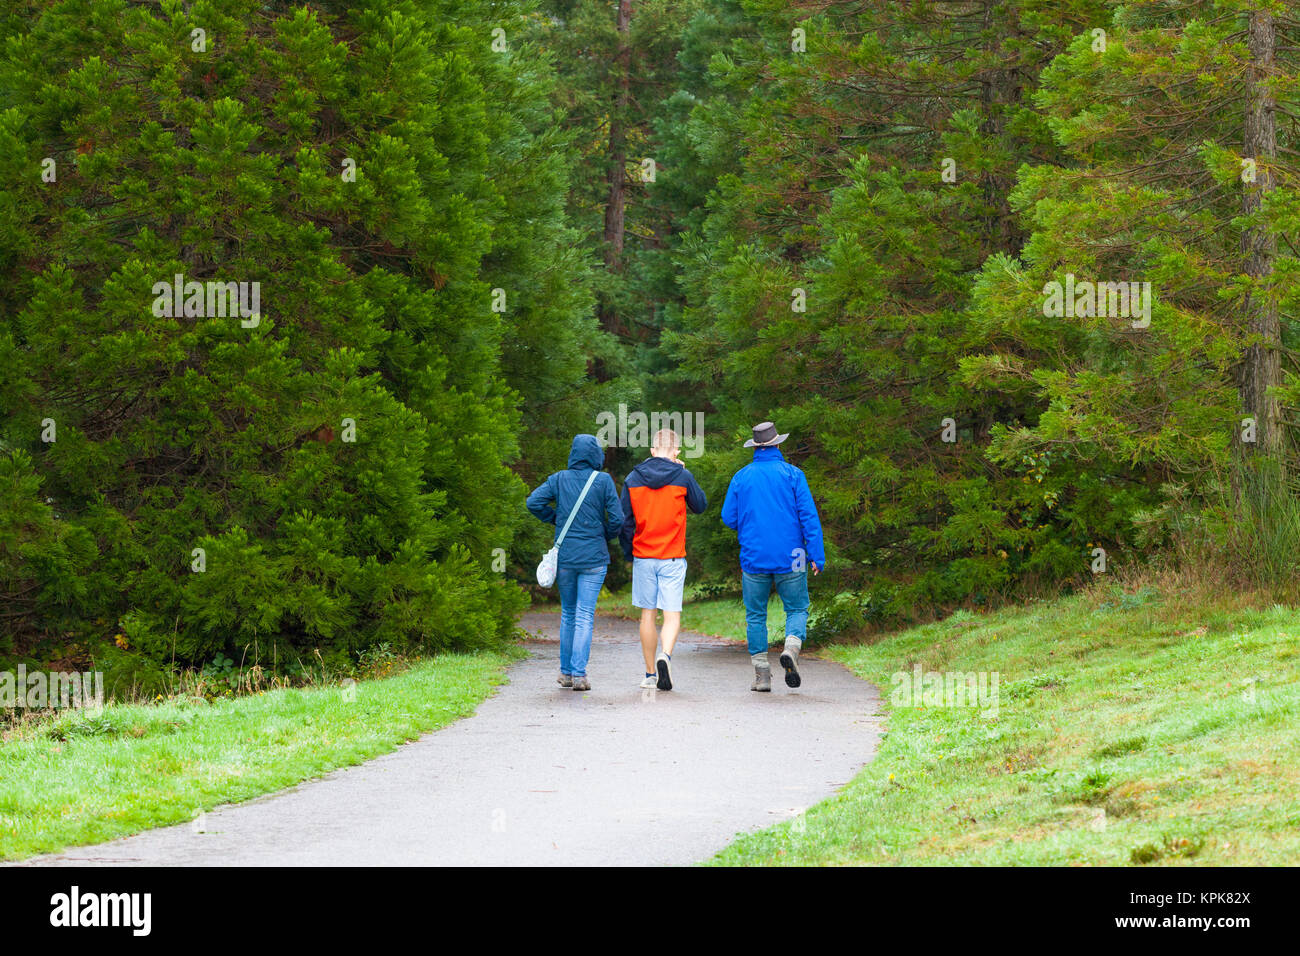 A group of walkers at the Bedgebury National Pinetum at Bedgebury, Kent - Stock Image